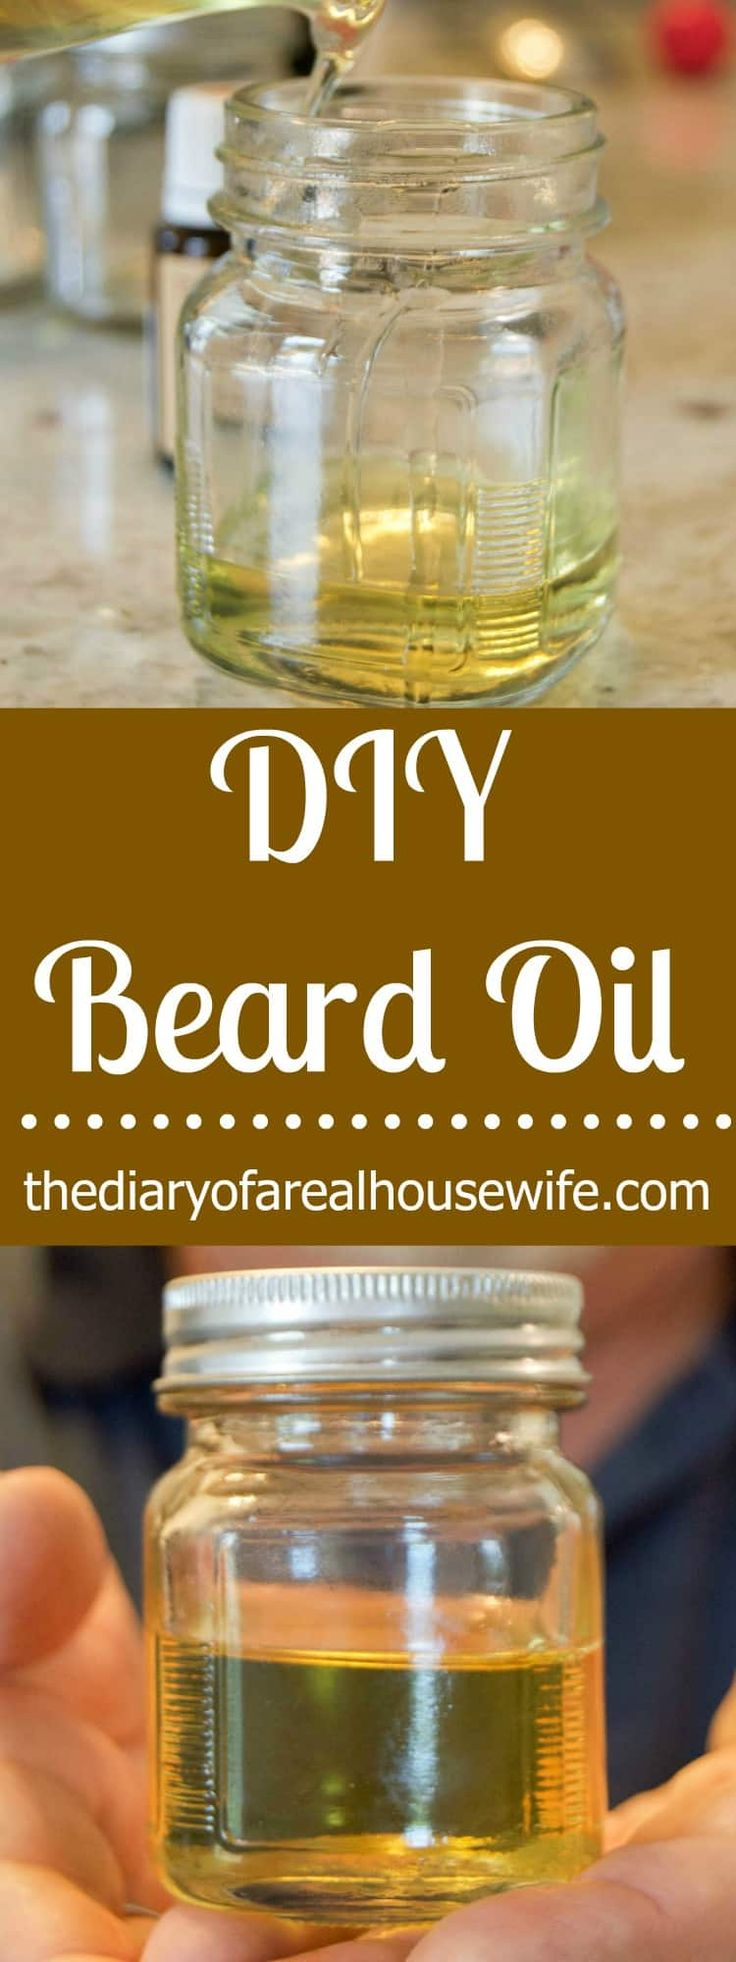 DIY Beard Oil – The Diary of a Real Housewife